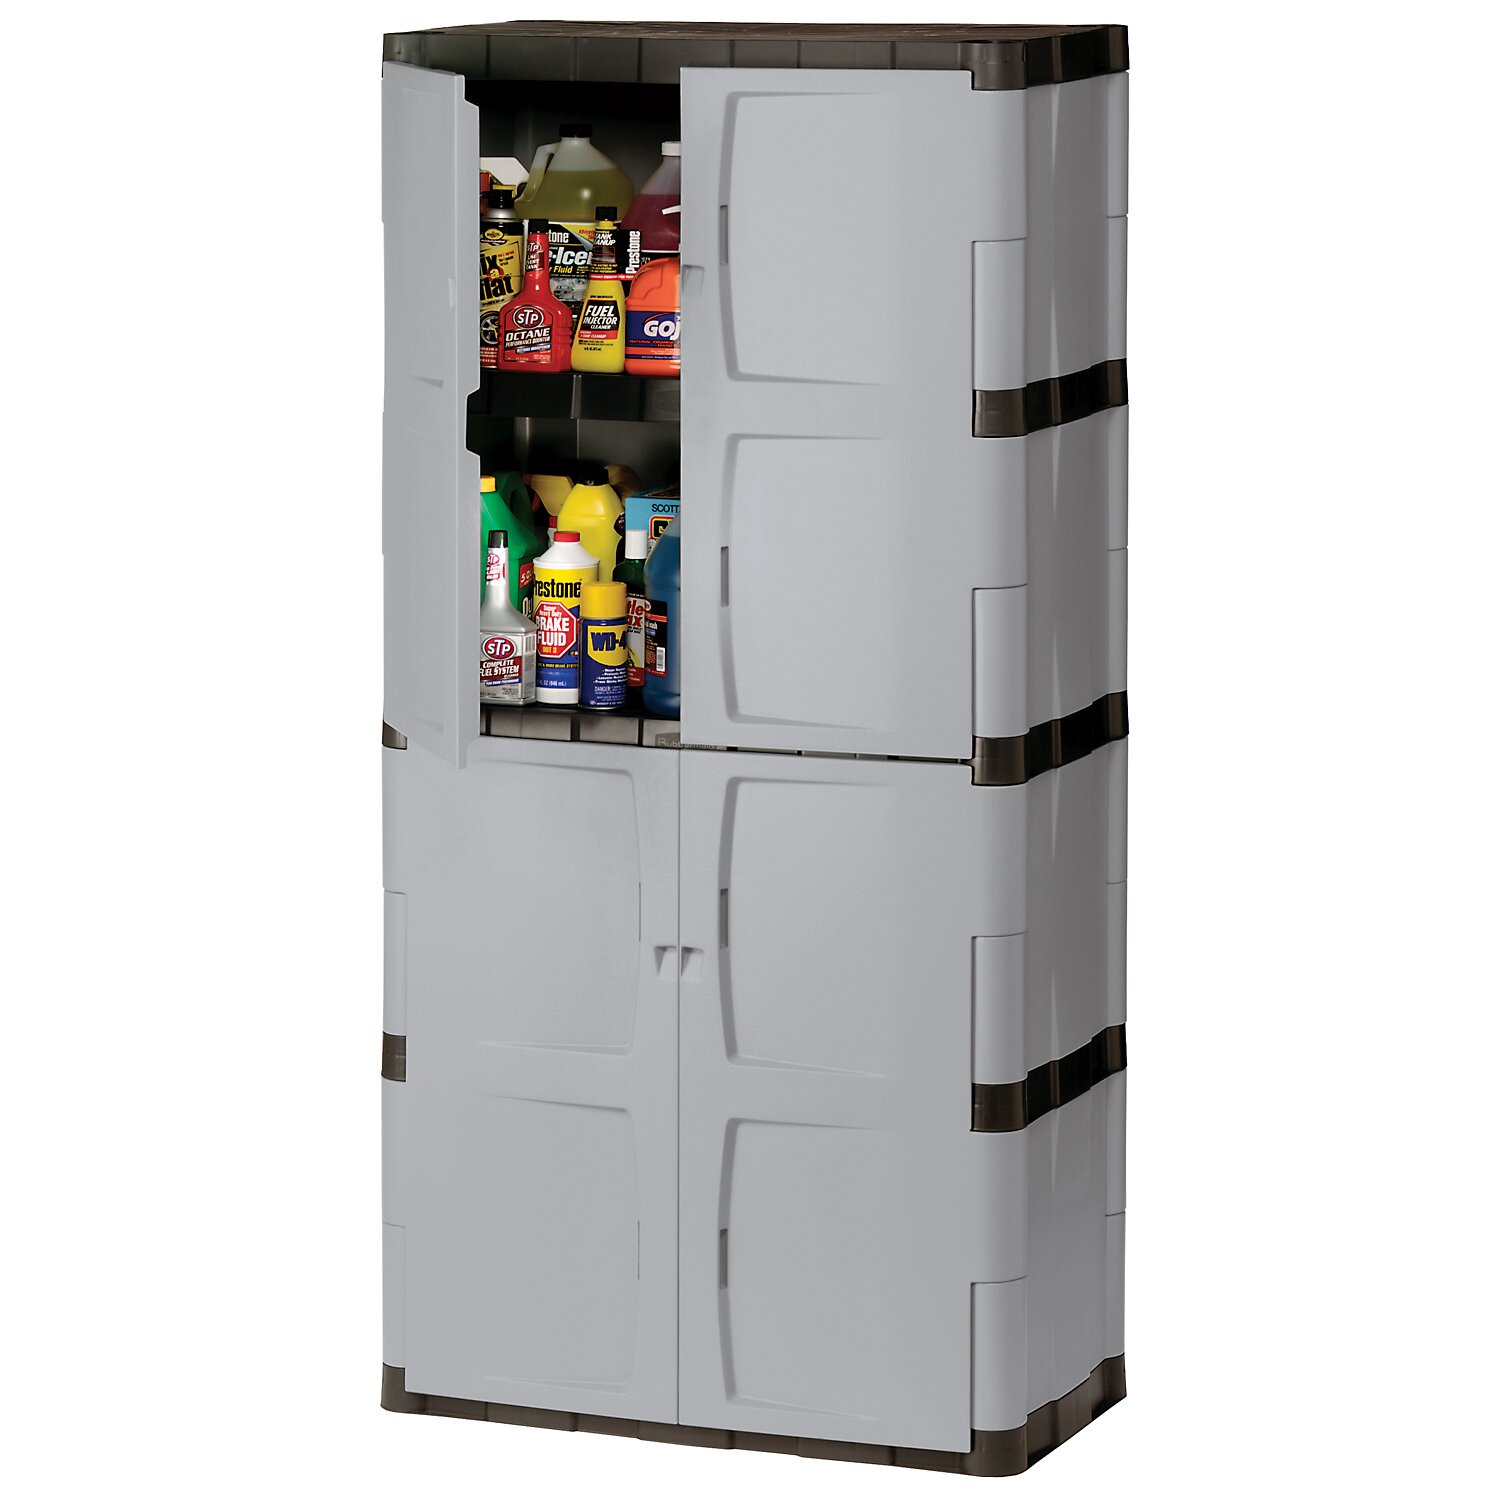 rubbermaid 72 h x 36 w x 18 d full double door cabinet